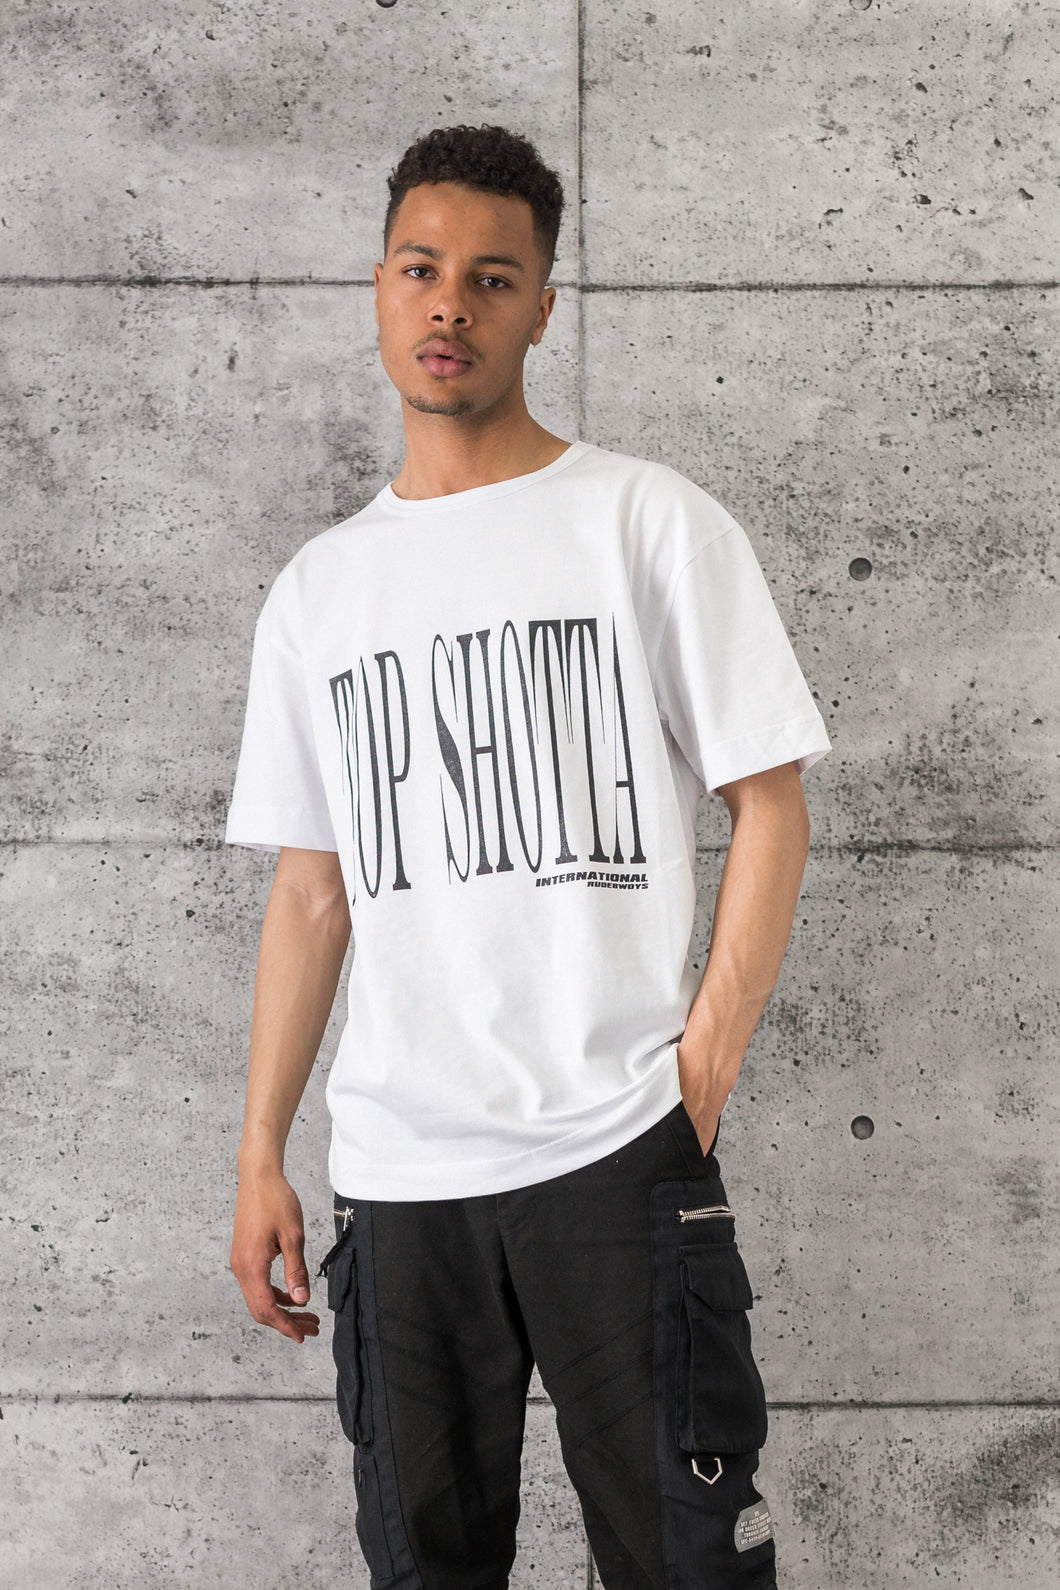 Top Shotta Tee - White